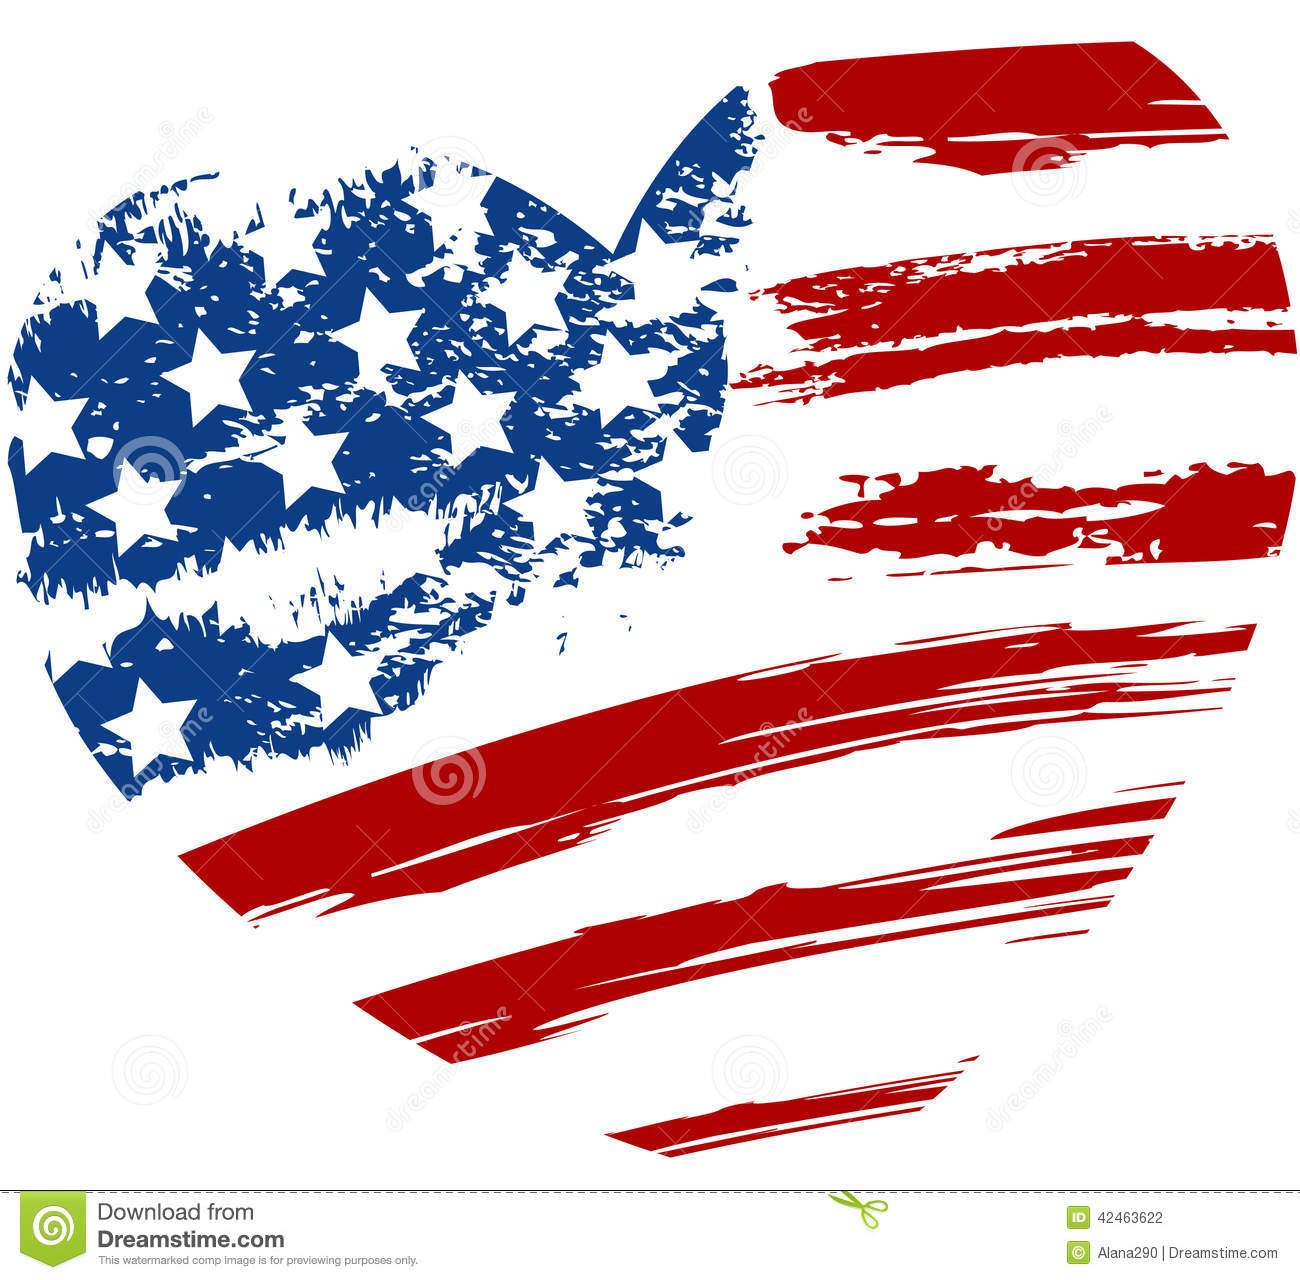 Us flag heart clipart jpg freeuse download Usa shaped american flag clipart - ClipartFest jpg freeuse download